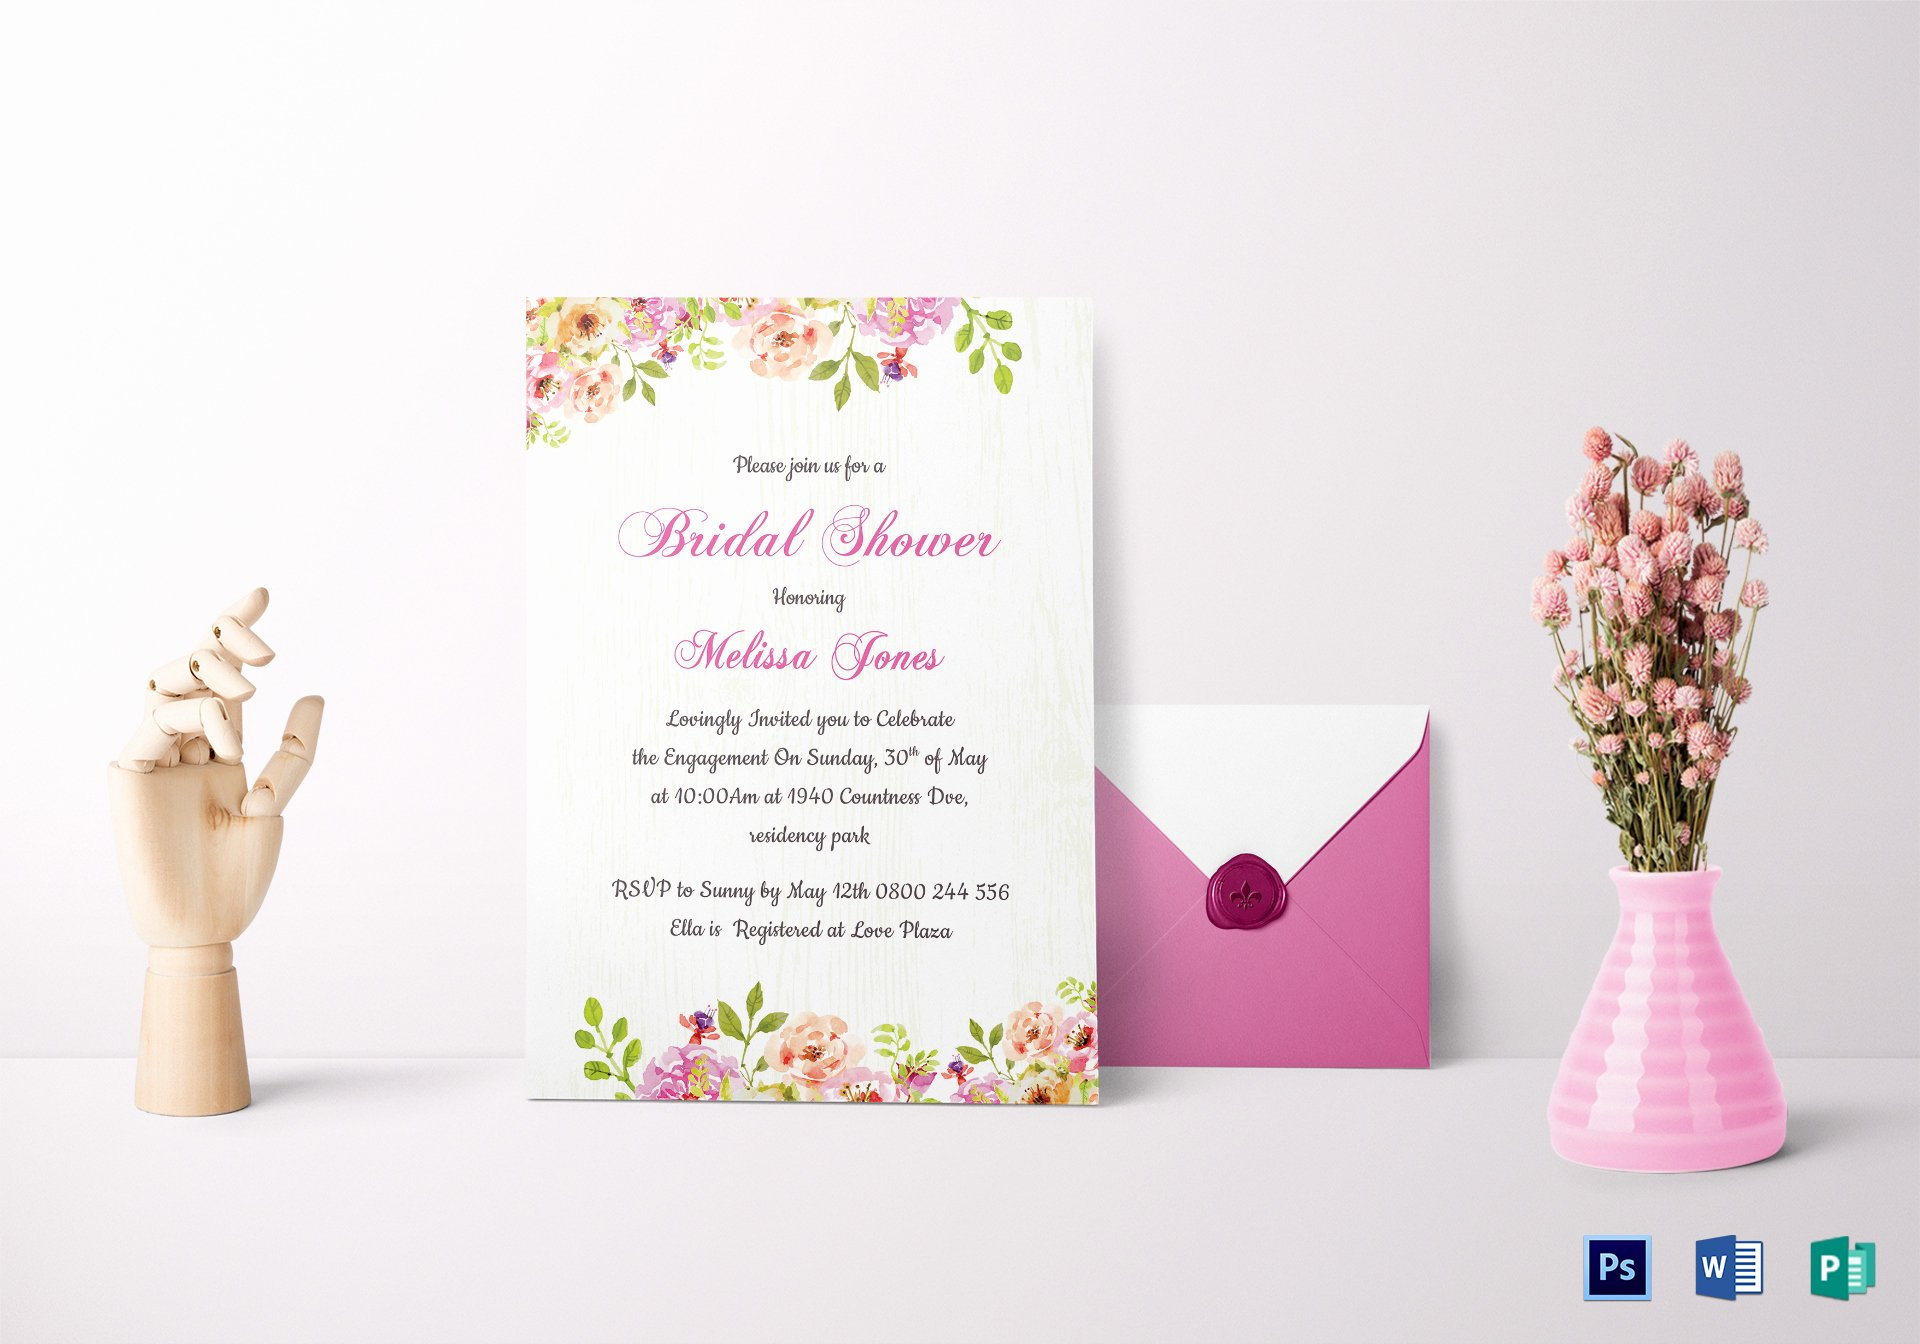 Bridal Shower Card Template Unique Floral Bridal Shower Invitation Card Design Template In